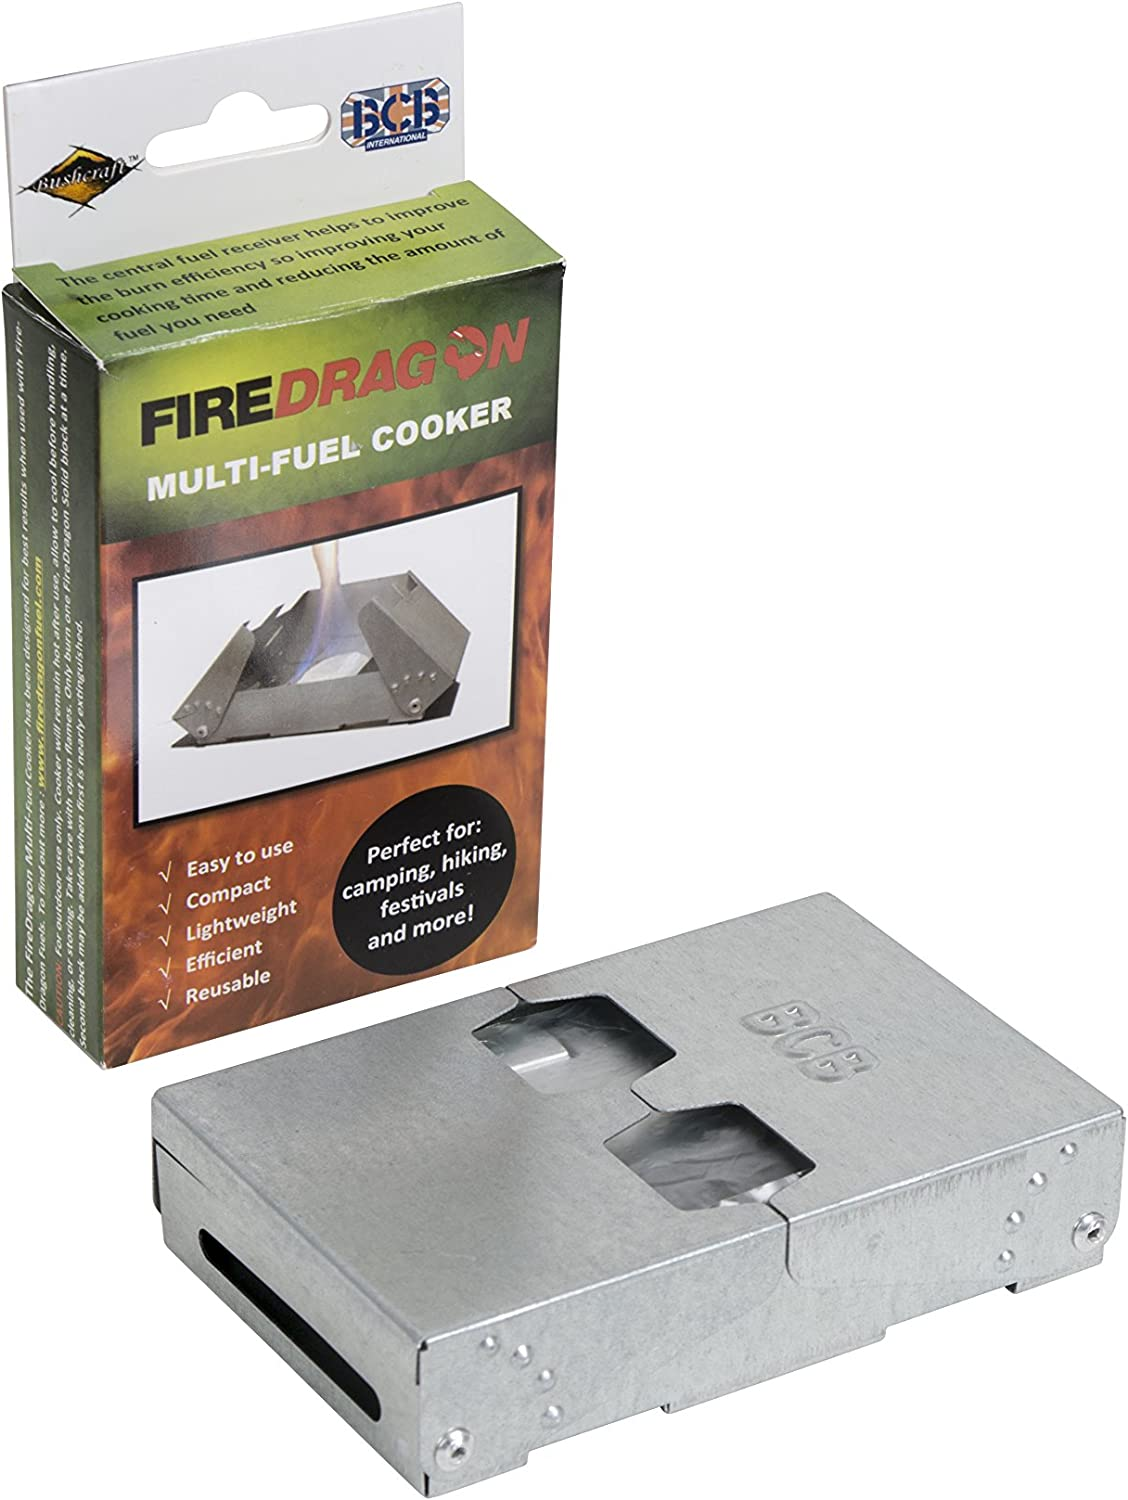 Bushcraft FireDragon Multi-Fuel Cooker, One Size